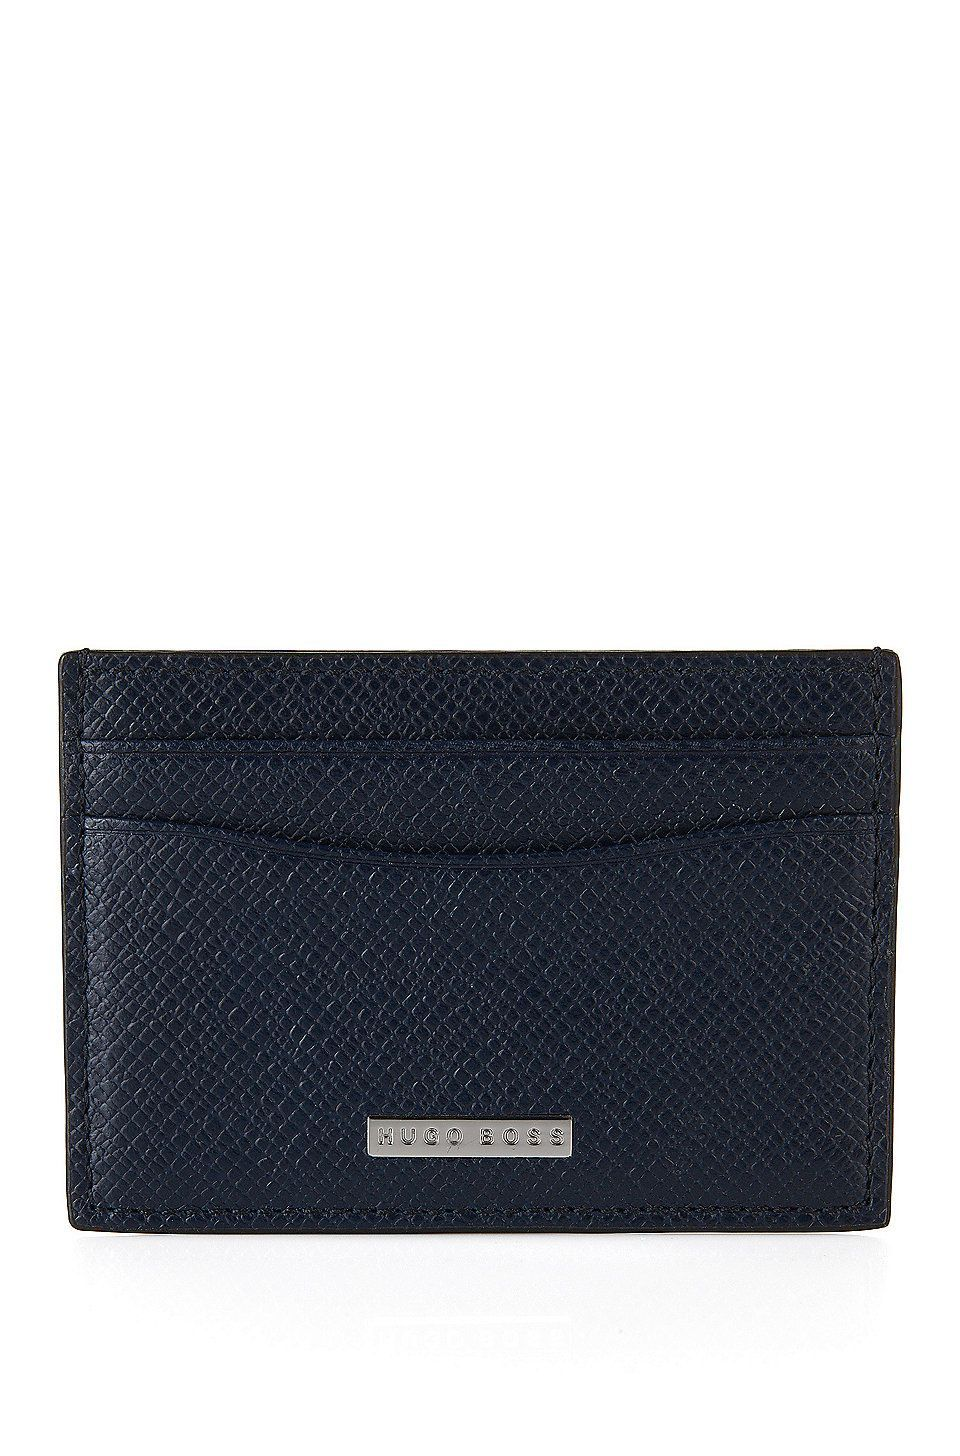 81b2d123820c HUGO BOSS Signature Collection card holder in grained palmellato leather -  Dark Blue Wallets and Key